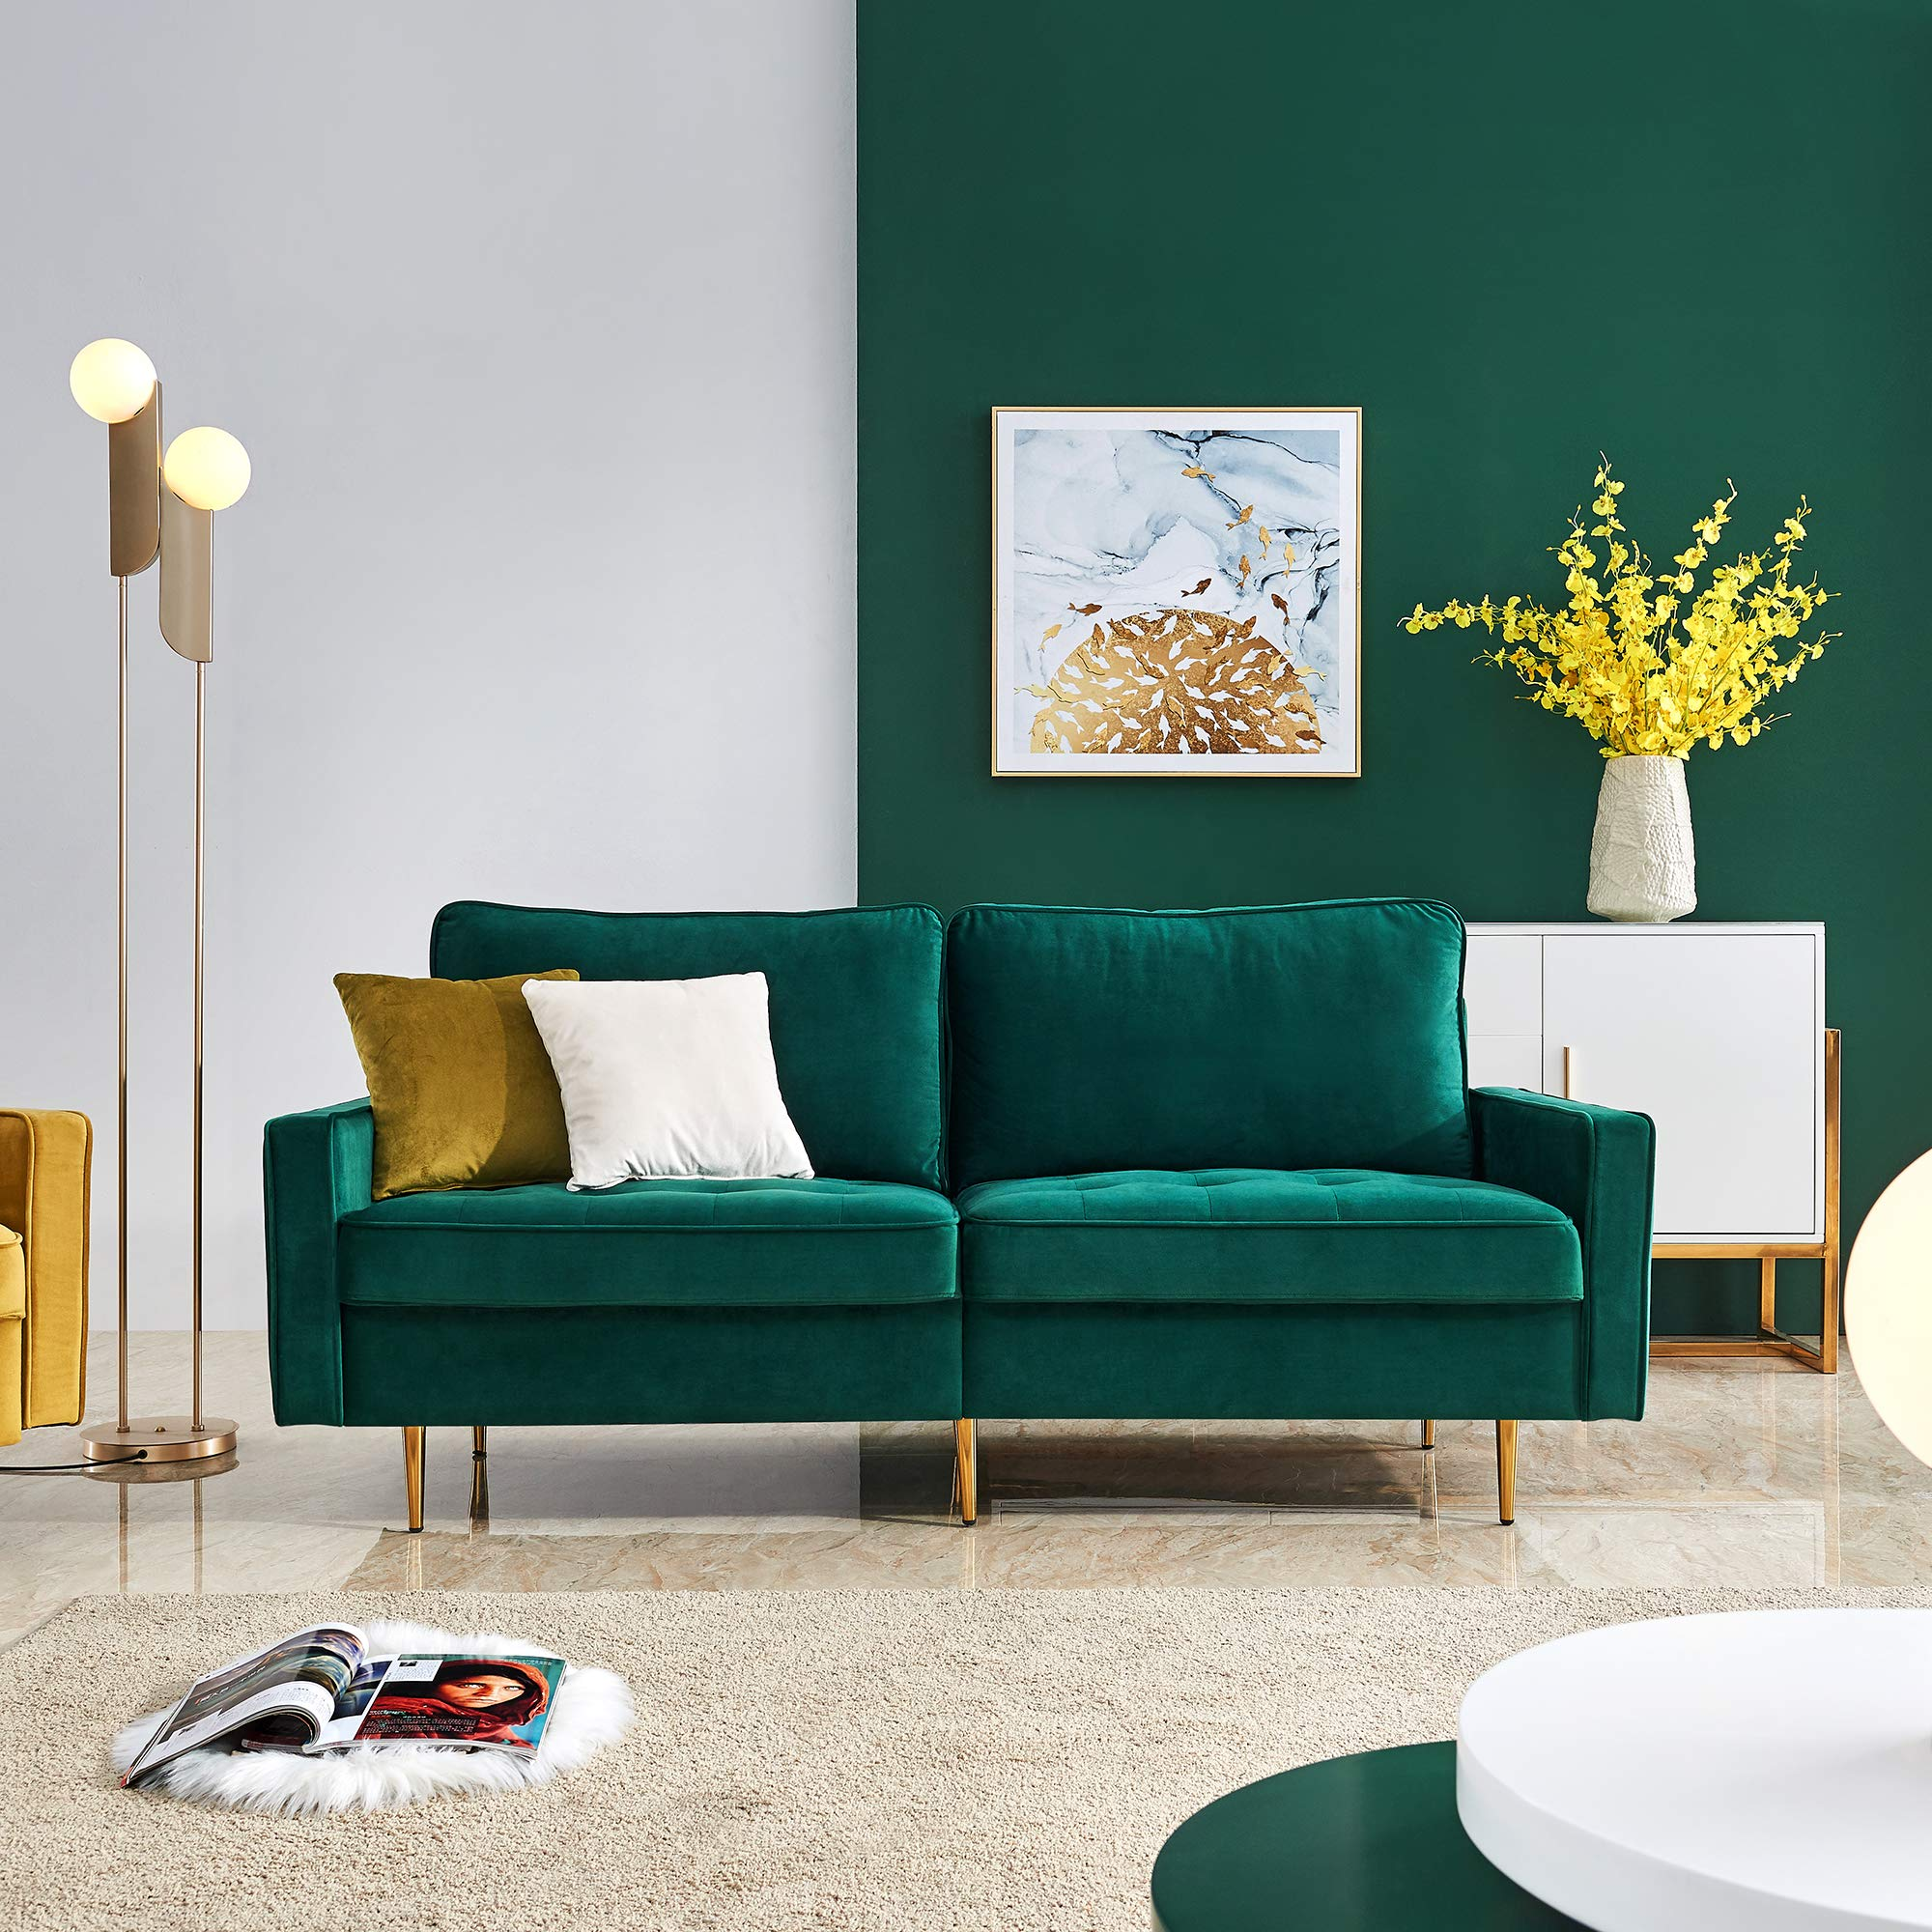 Amazon Com Emerald Green Velvet Fabric Sofa Couch Julyfox 71 Inch Wide Mid Century Modern Living Room Couch 700lb Heavy Duty With 2 Throw Pillows Kitchen Dining